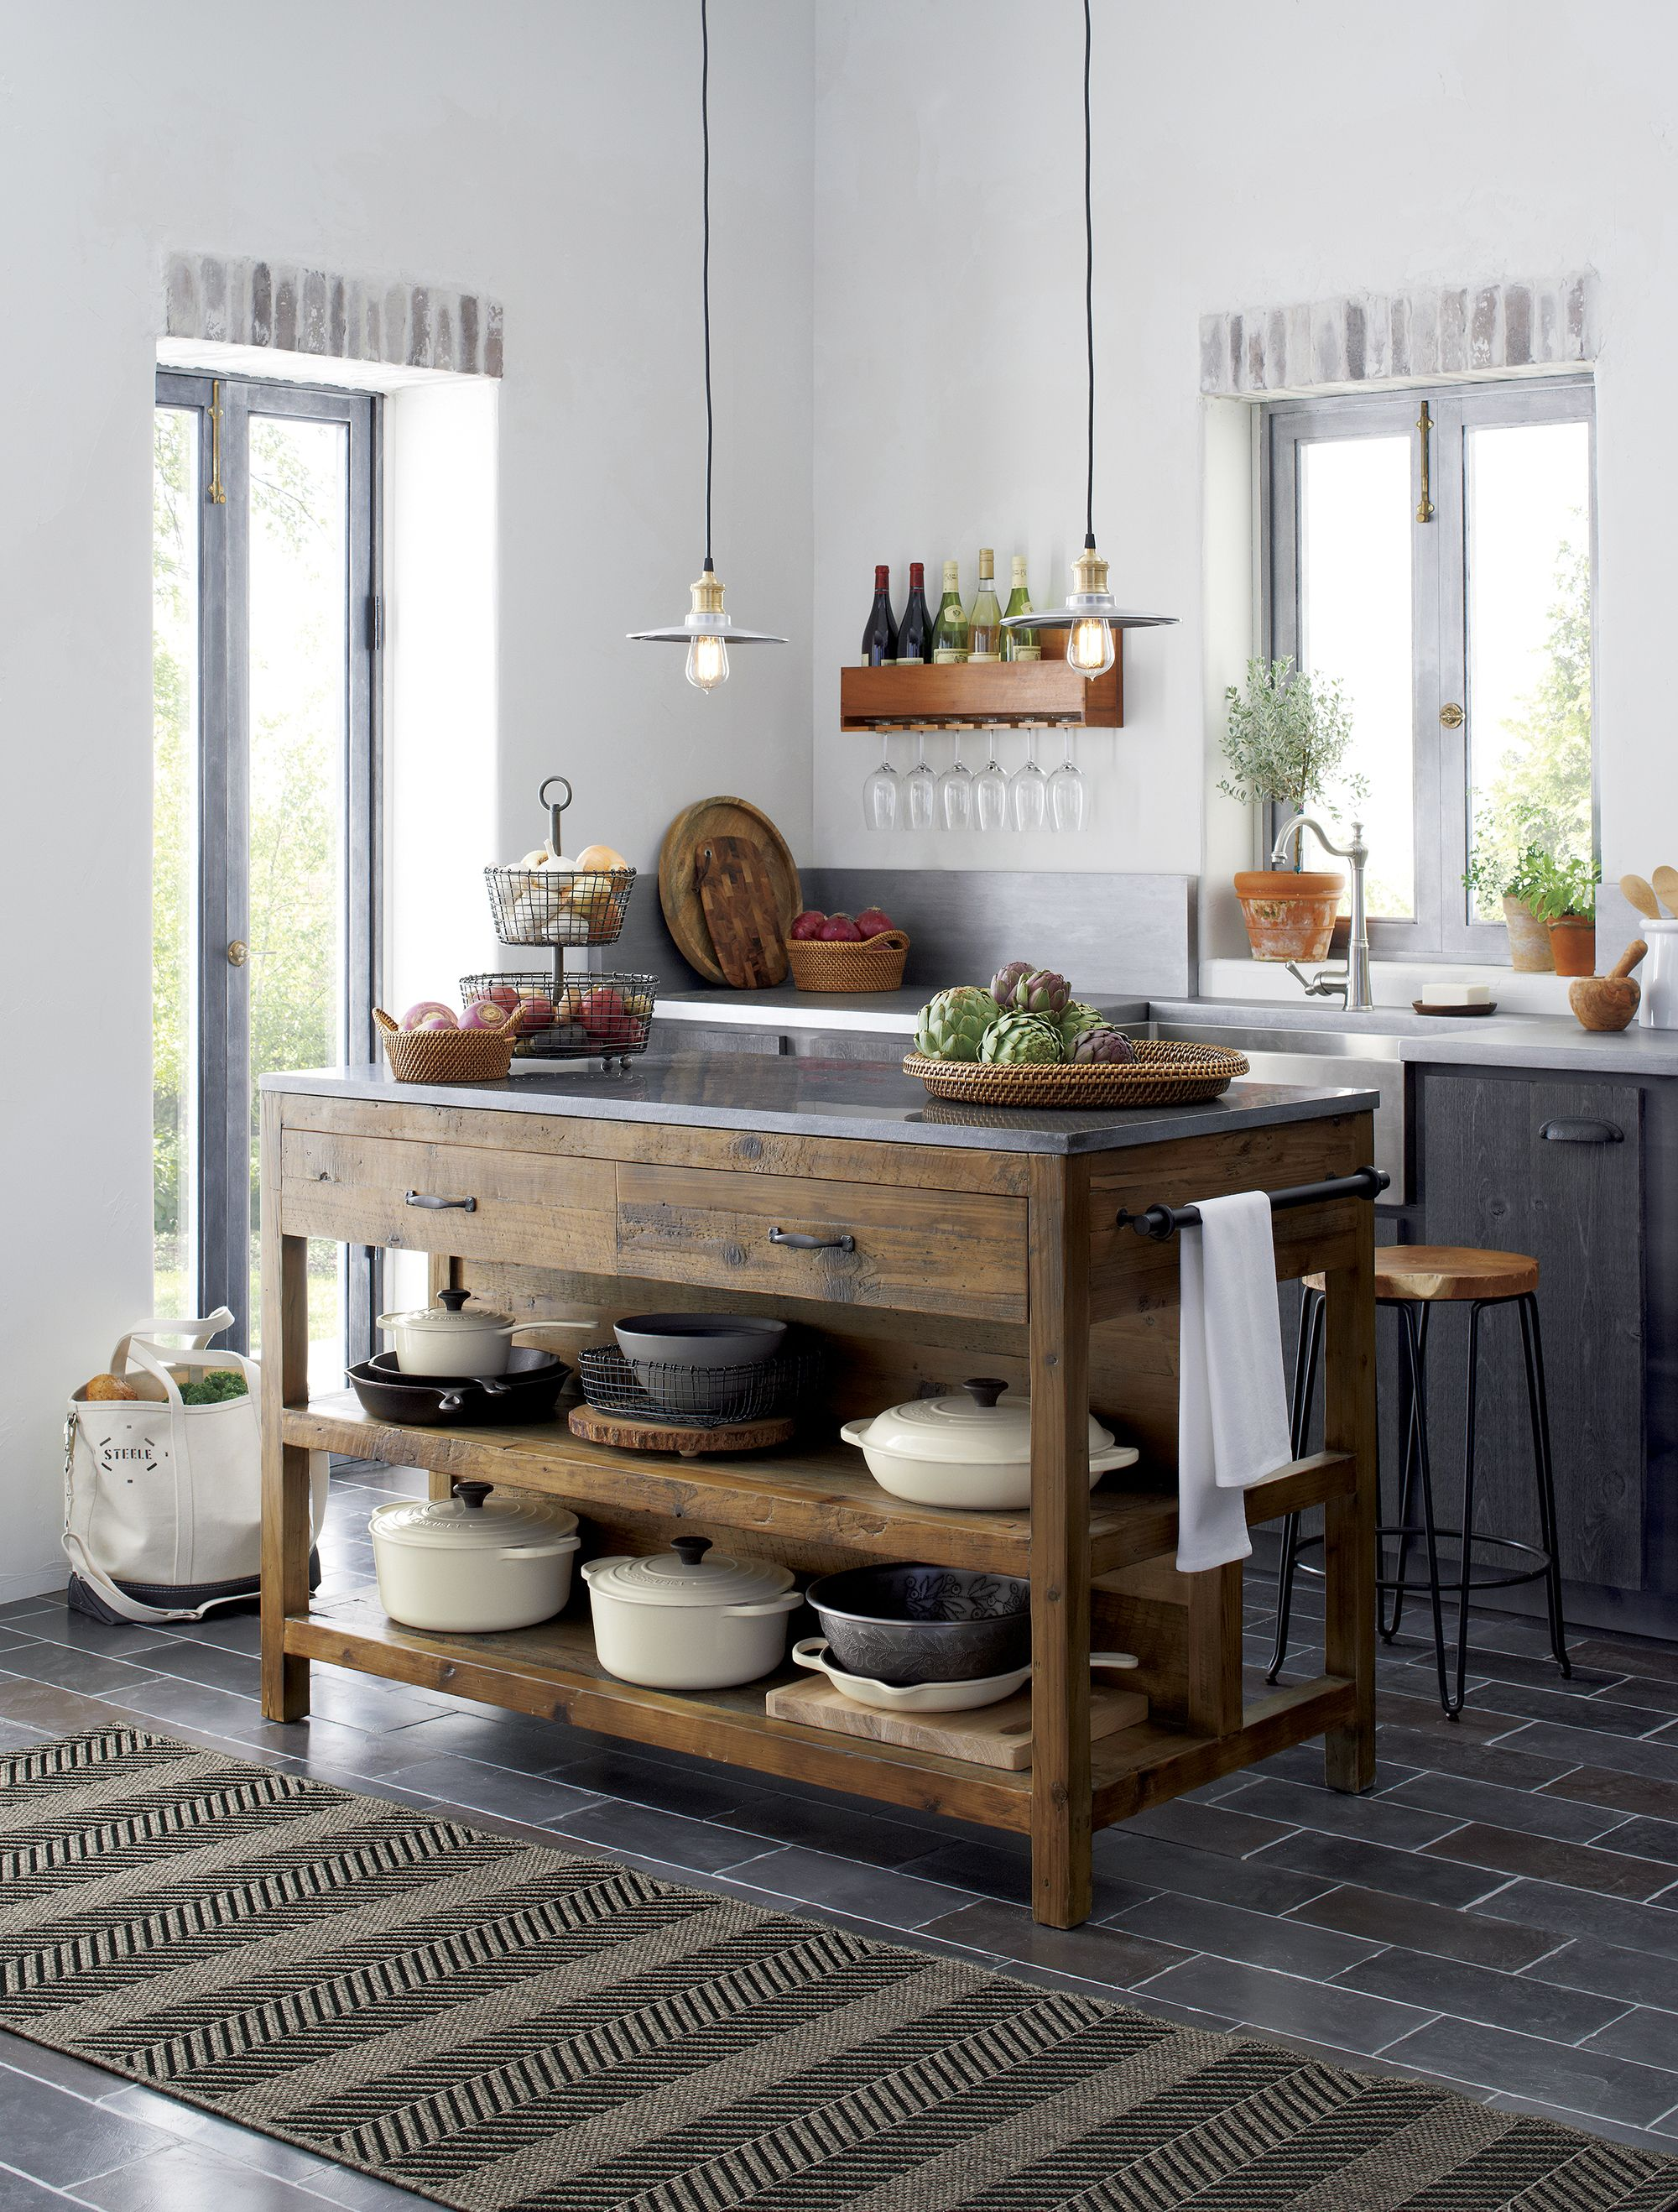 Charmant Like A Treasured Vintage Find Or A Custom Designed Piece, This Elegant Kitchen  Island Serves As A Rustic Yet Refined Workstation For The Home Cook Or ...